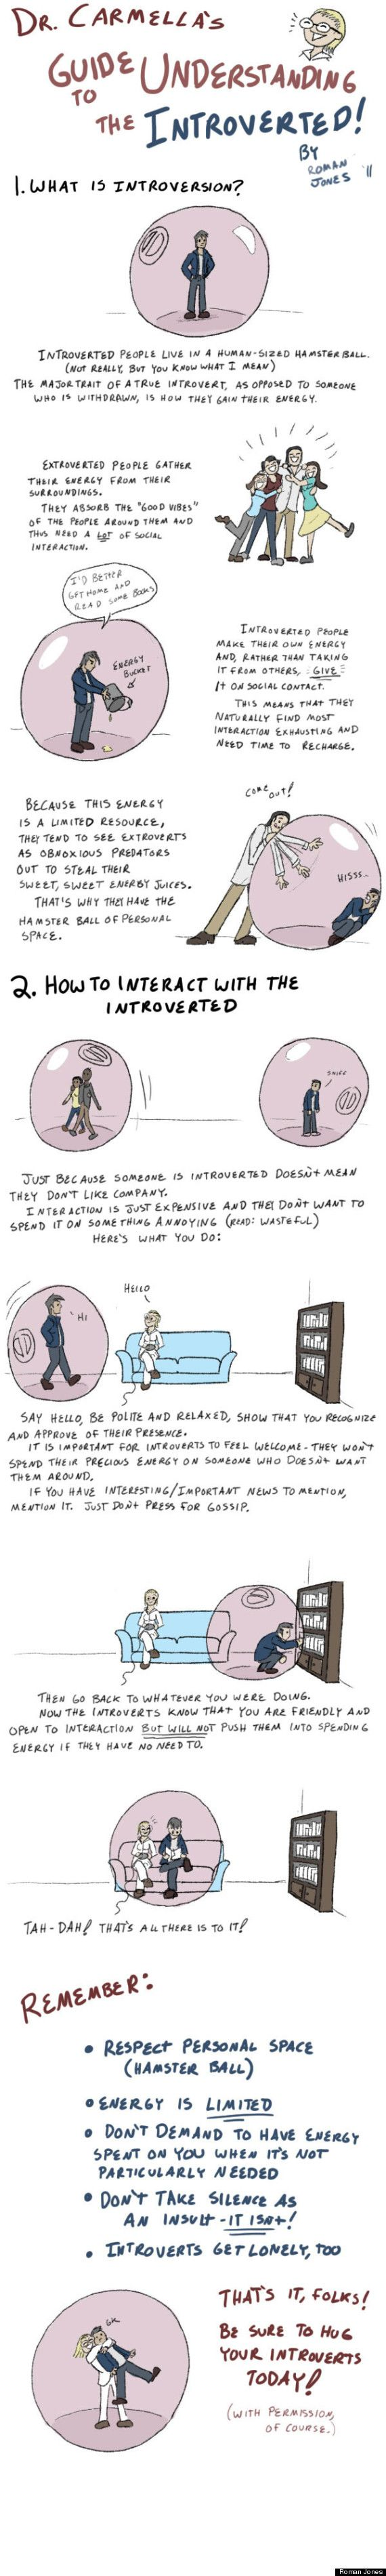 roman jones: Dr. Carmella's Guide to Understanding the Introverted